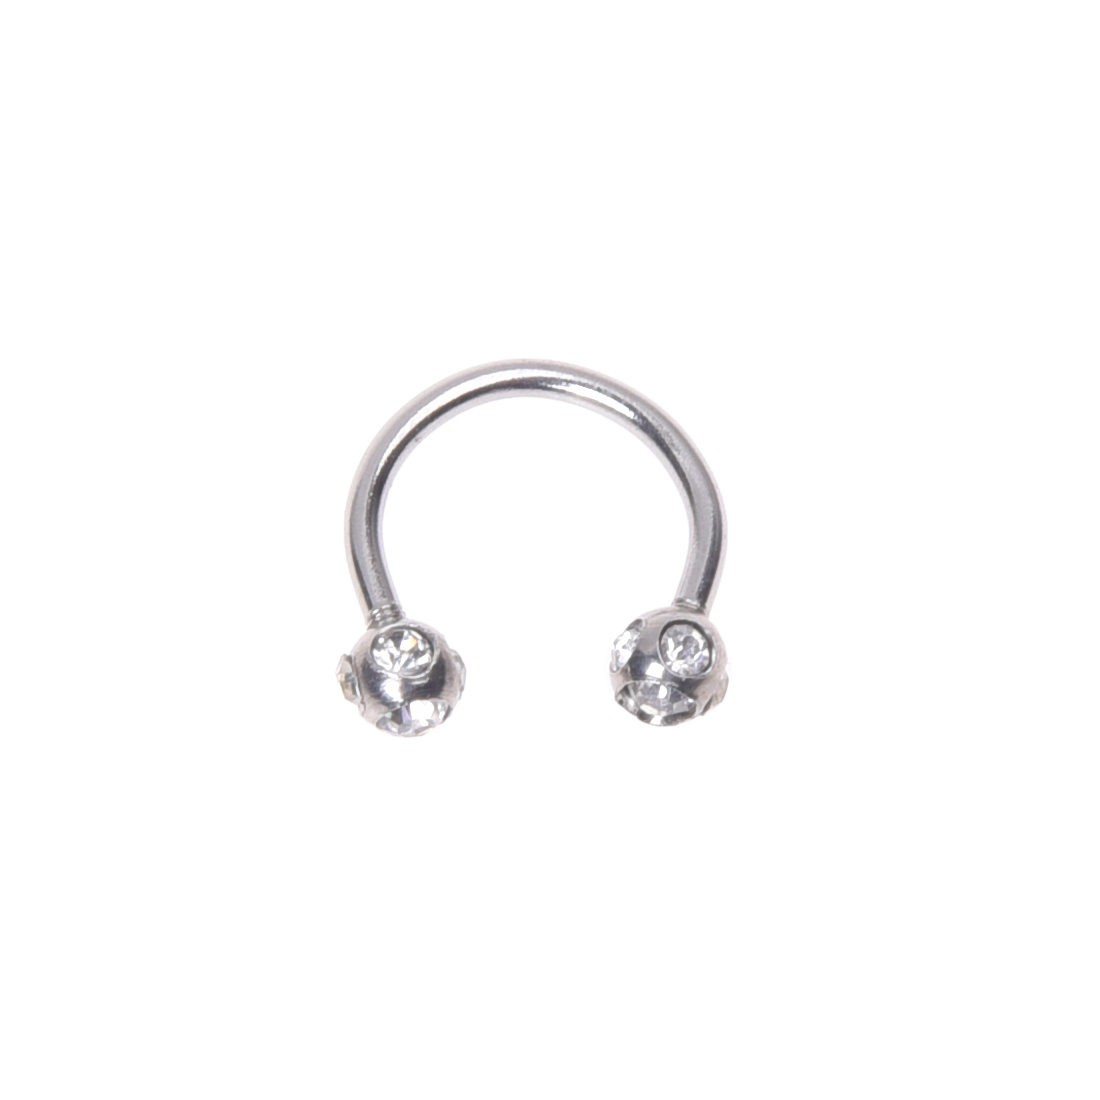 Horseshoe Crystal 316L steel lip chin ring ear barbell